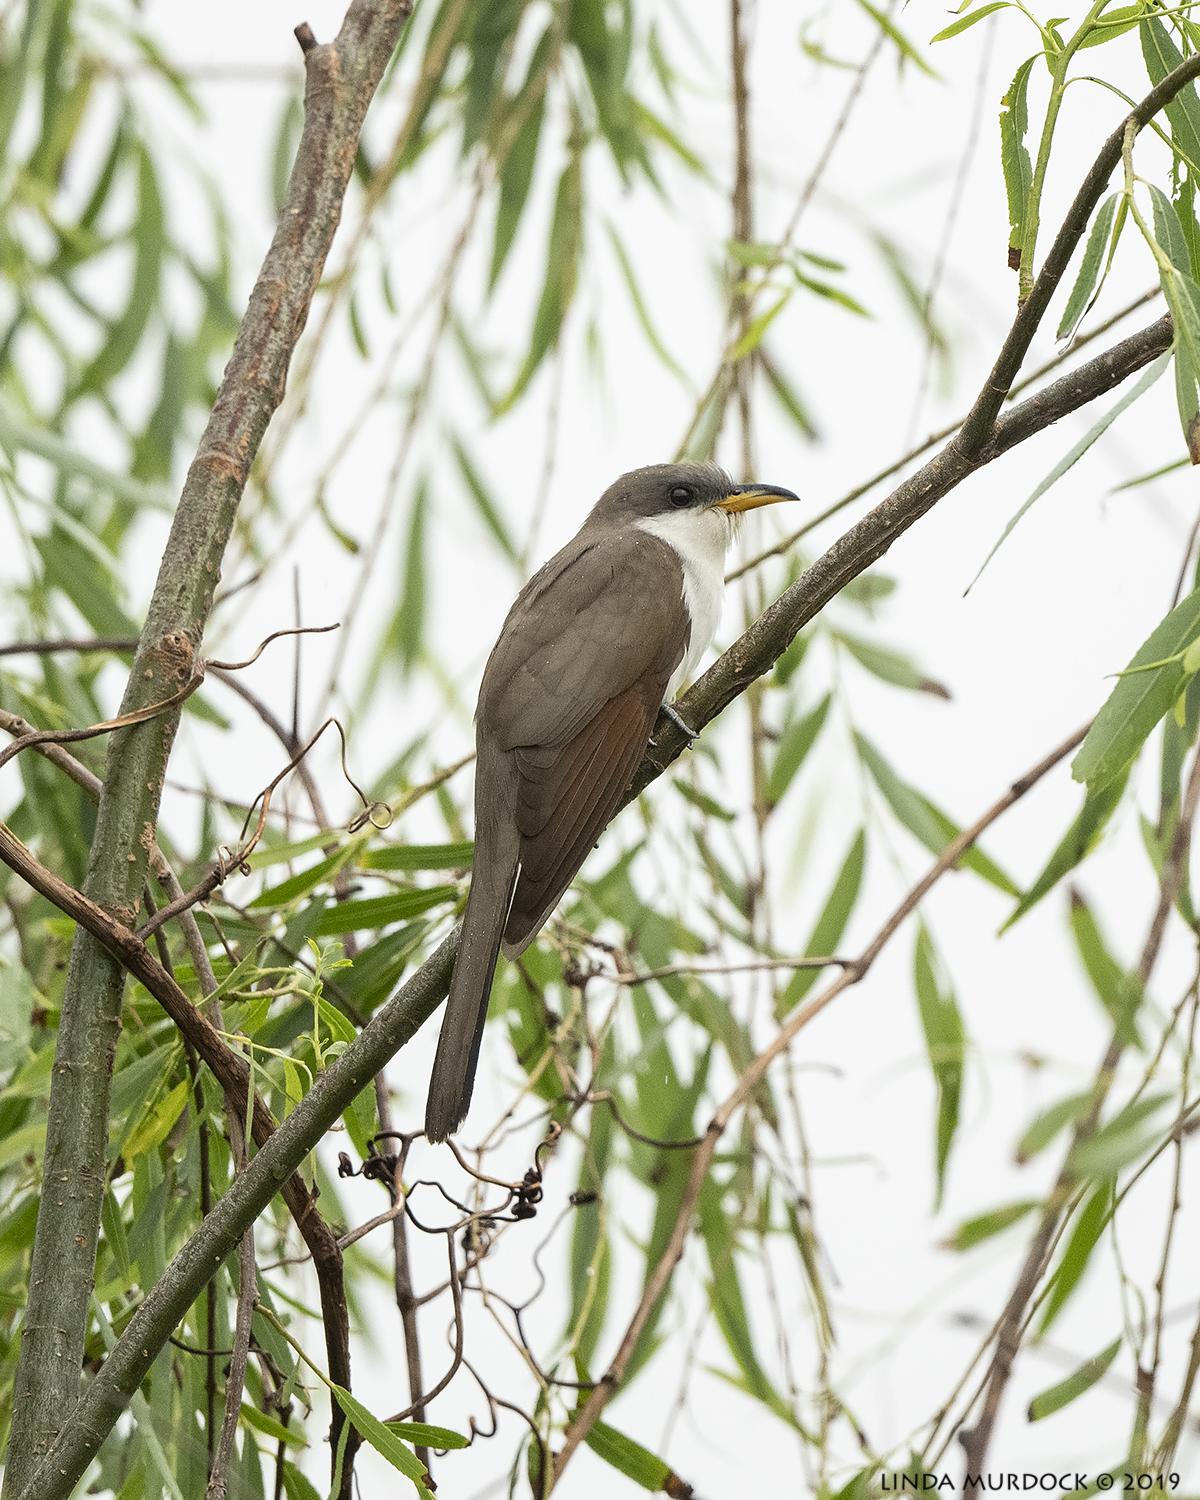 Yellow-billed Cuckoo in the light rain    Nikon D850 with Nikkor 500 f/5.6 PF VR ~ 1/1600 sec f/5.6 ISO 1600